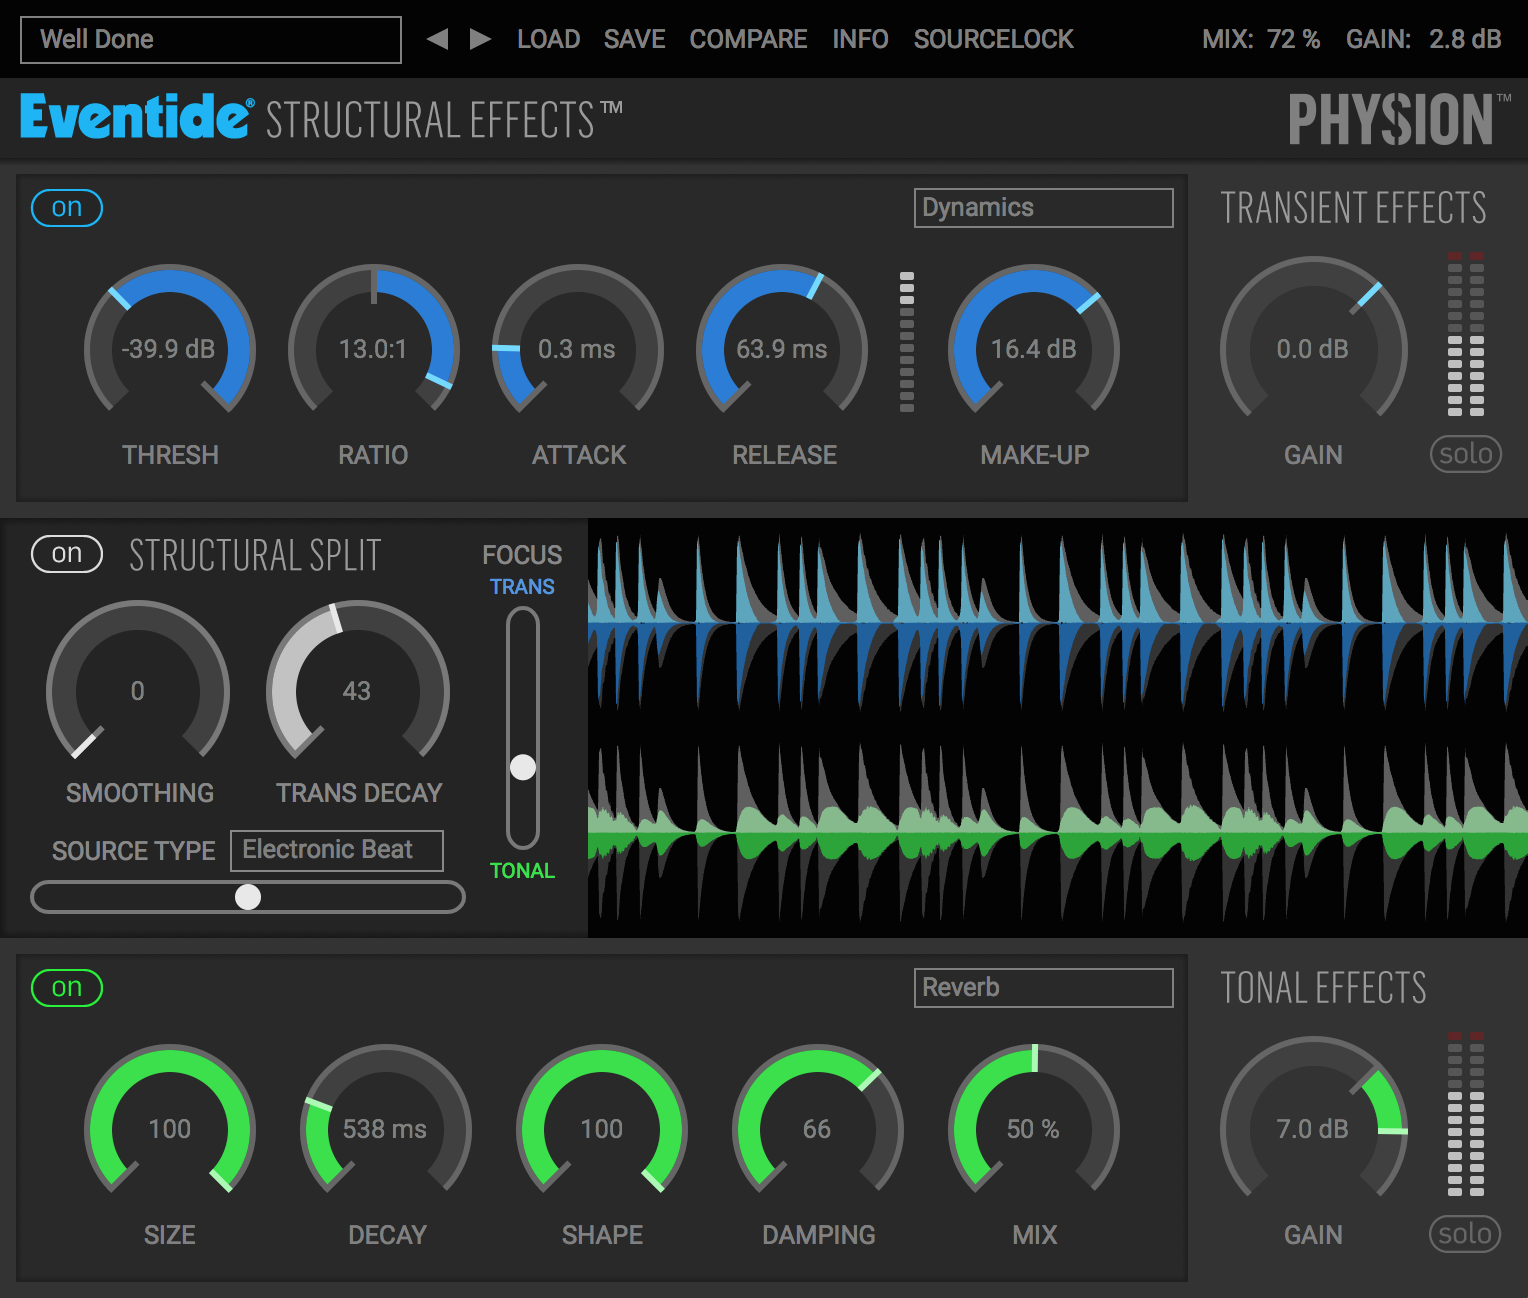 Eventide Physion Review - 29 Best Sound Design VST Plugins | Integraudio.com